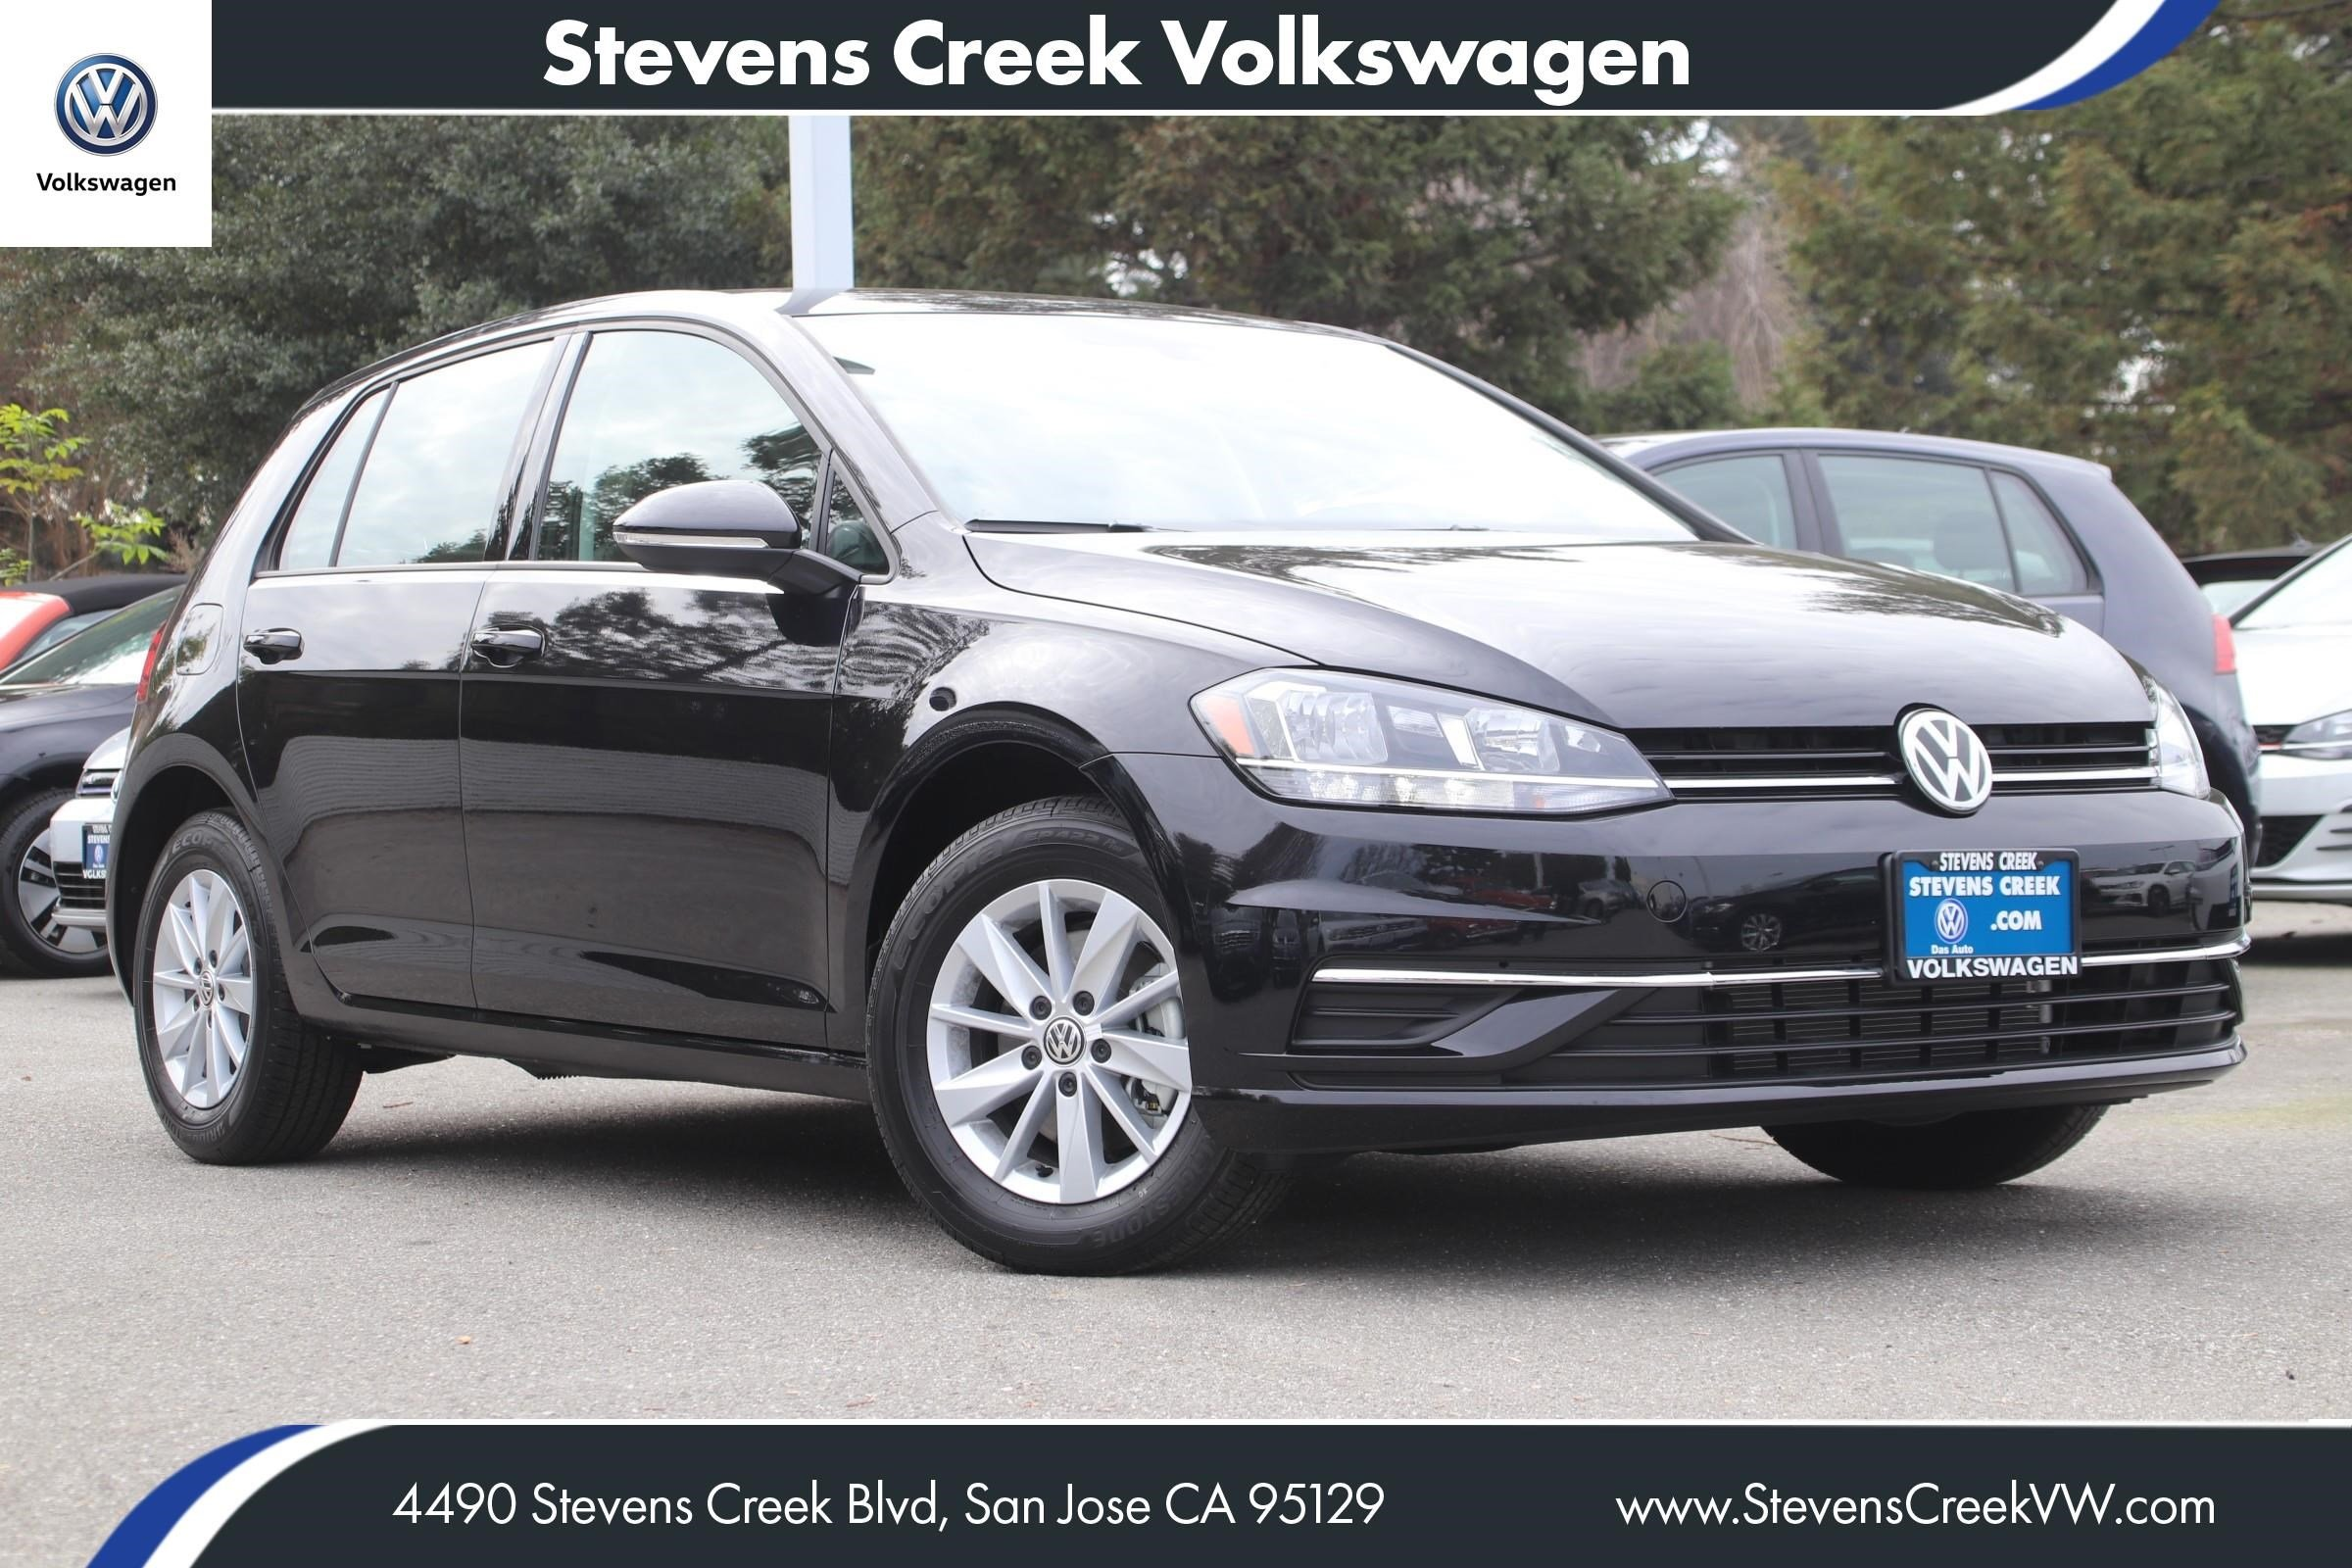 New 2019 Volkswagen Golf S FWD Hatchback VIN# KM002388 MSRP $24,110